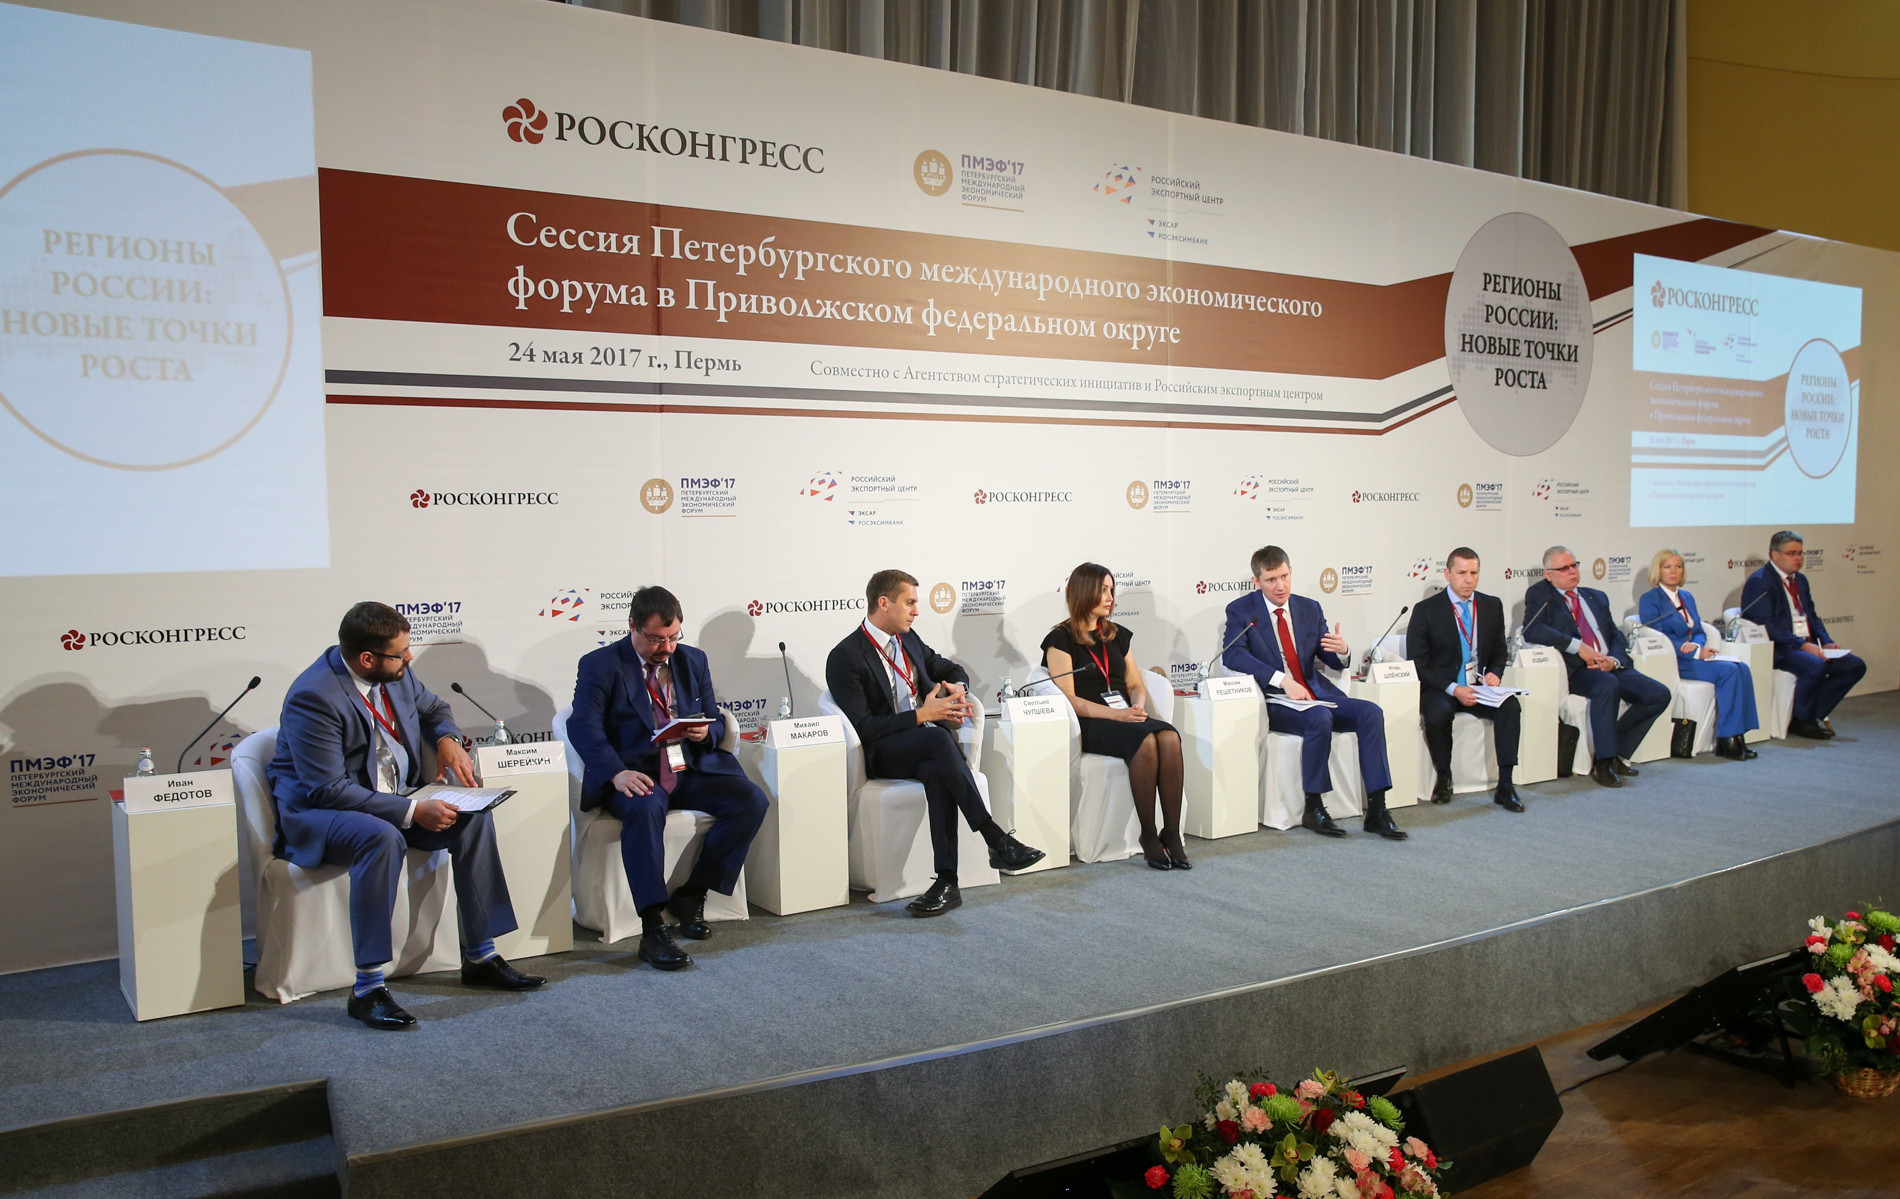 Perm session completes cycle of regional offsite events in run-up to SPIEF 2017